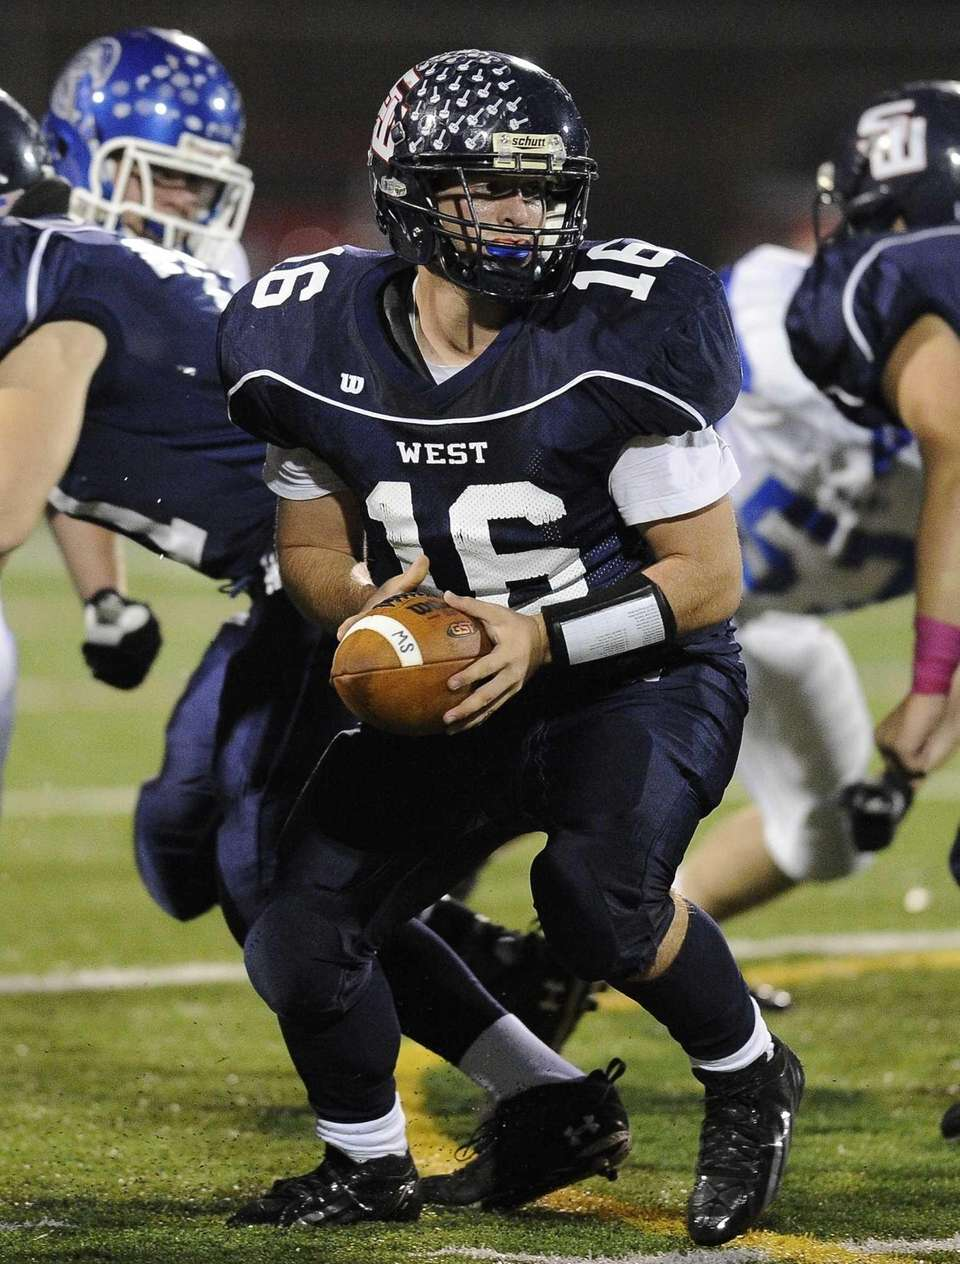 Smithtown West quarterback looks to hand off against